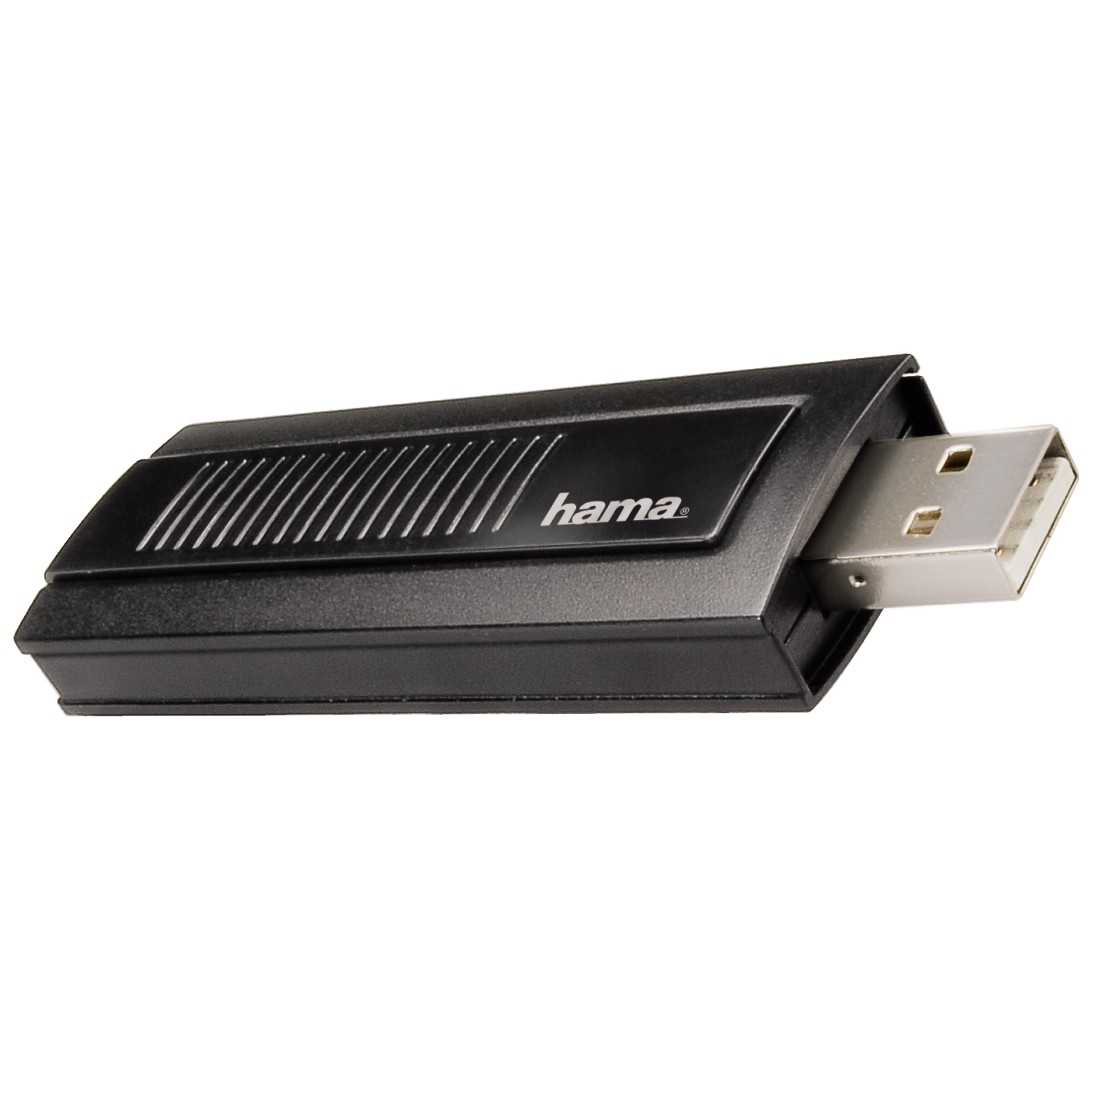 abx3 High-Res Image 3 - Hama, Wireless LAN USB 2.0 Stick 54 Mbps